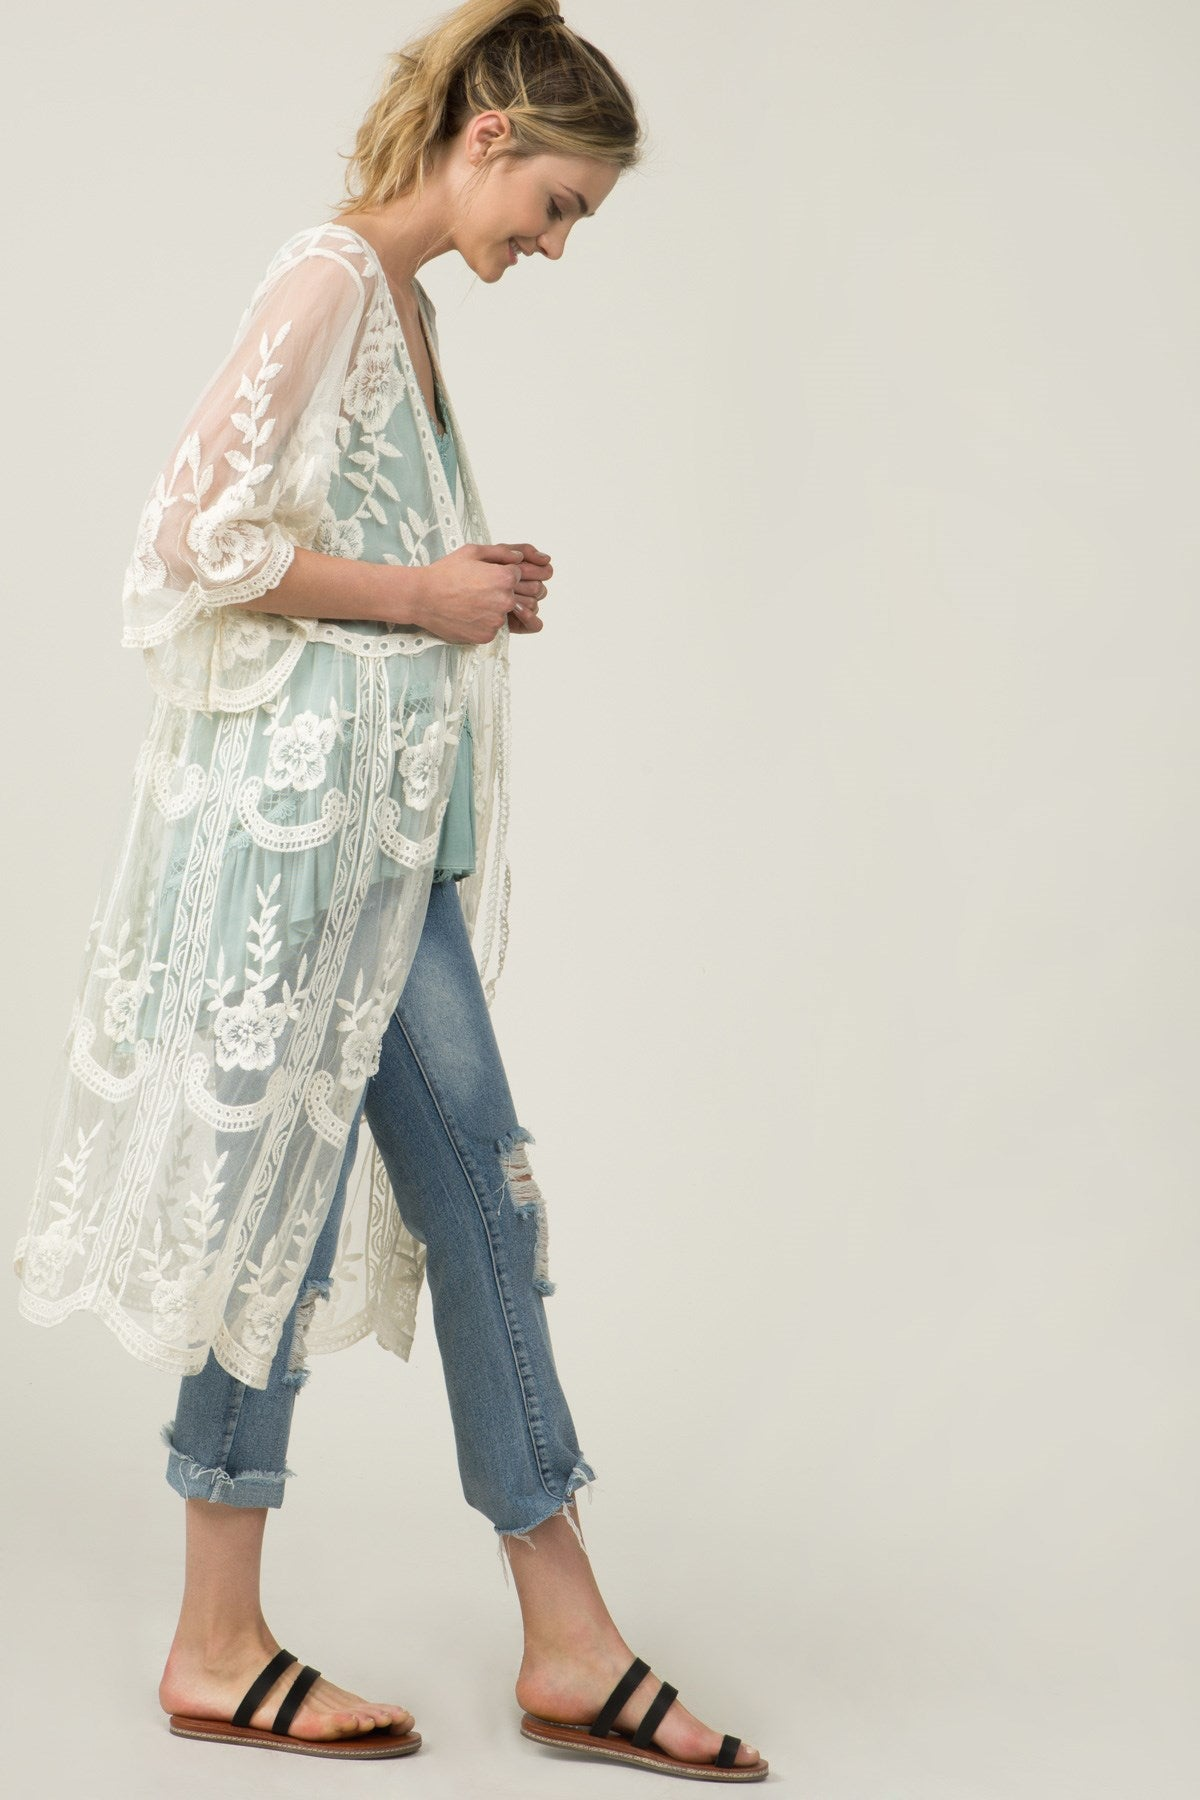 Right side view view young woman wearing sheer ivory empire waist embroidered cardigan